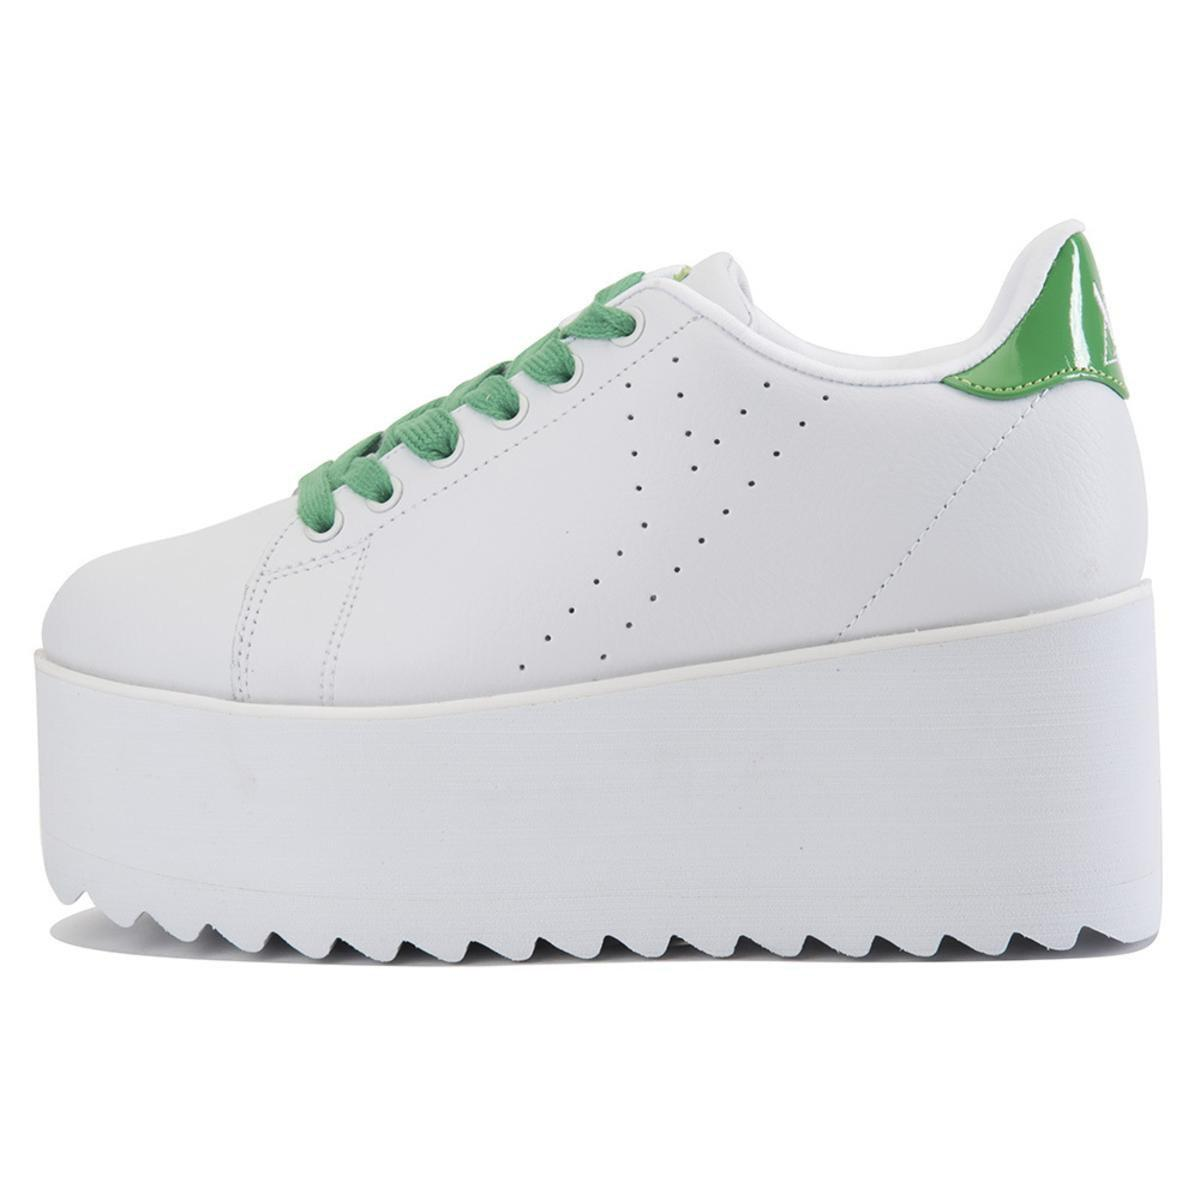 cb93cd393f0 Lyst - YRU Lala White Green Platform Sneakers in White - Save 21%